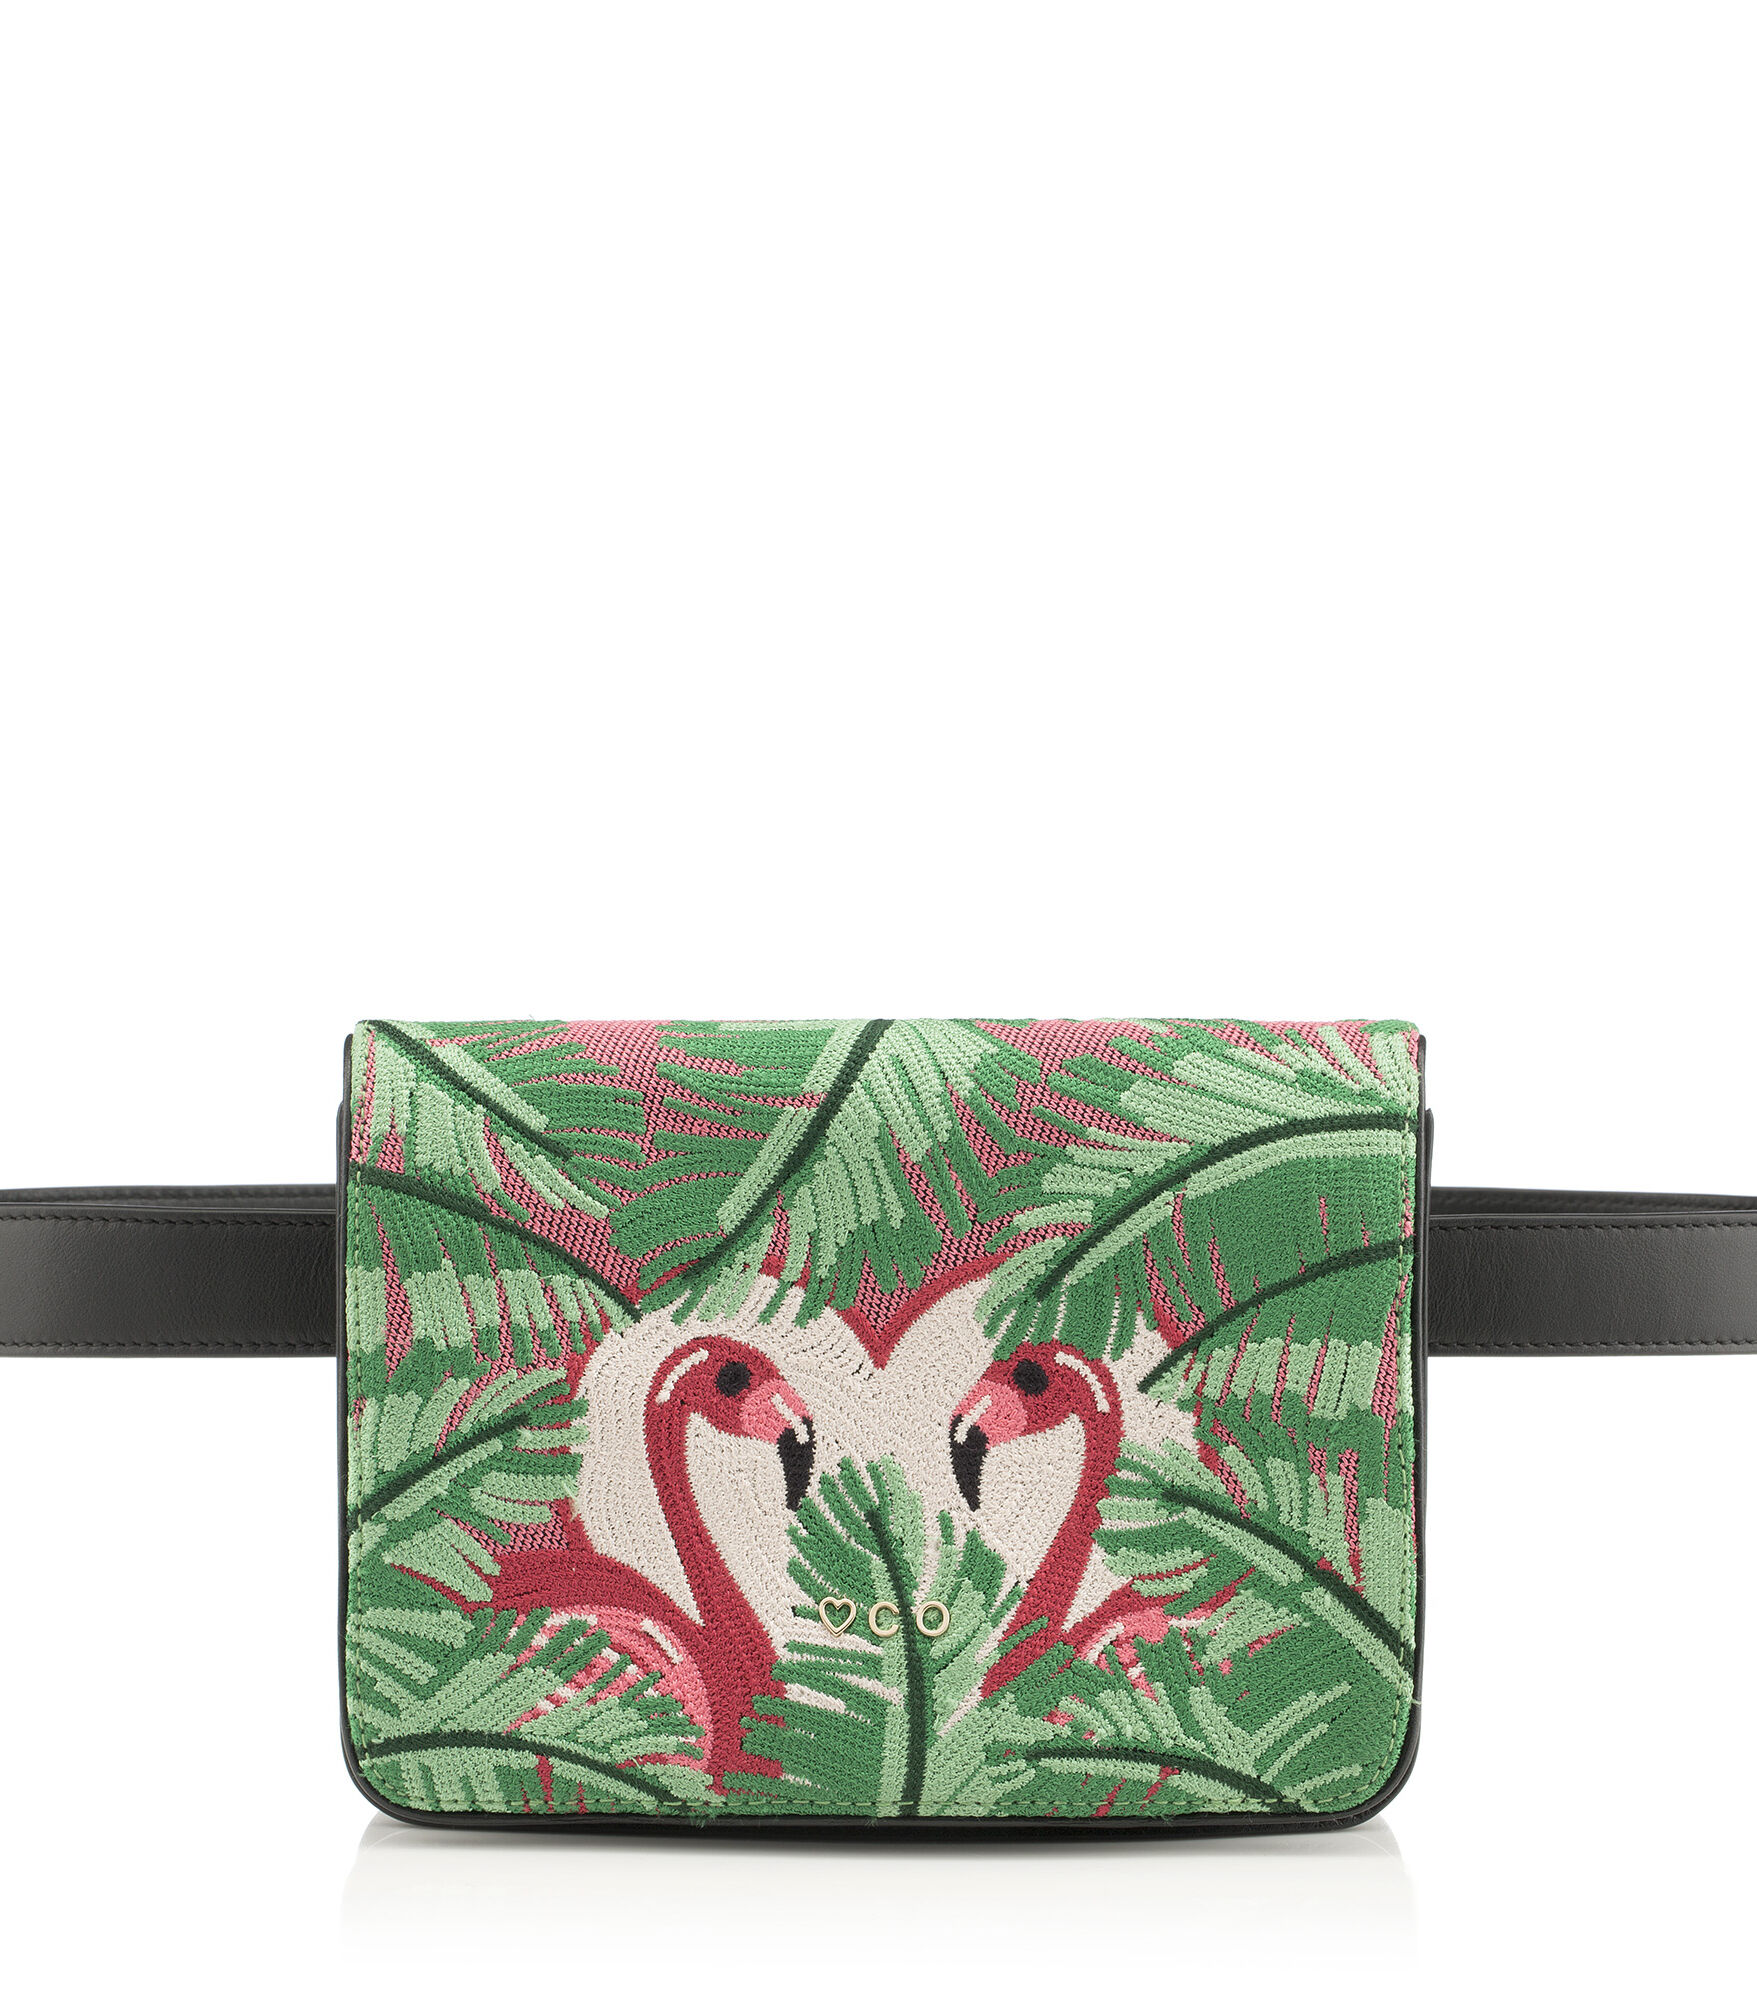 Charlotte Olympia Clutch and Handbags Women - FLAMINGO BELT BAG MULTI COLOUR Brass/crystals OS